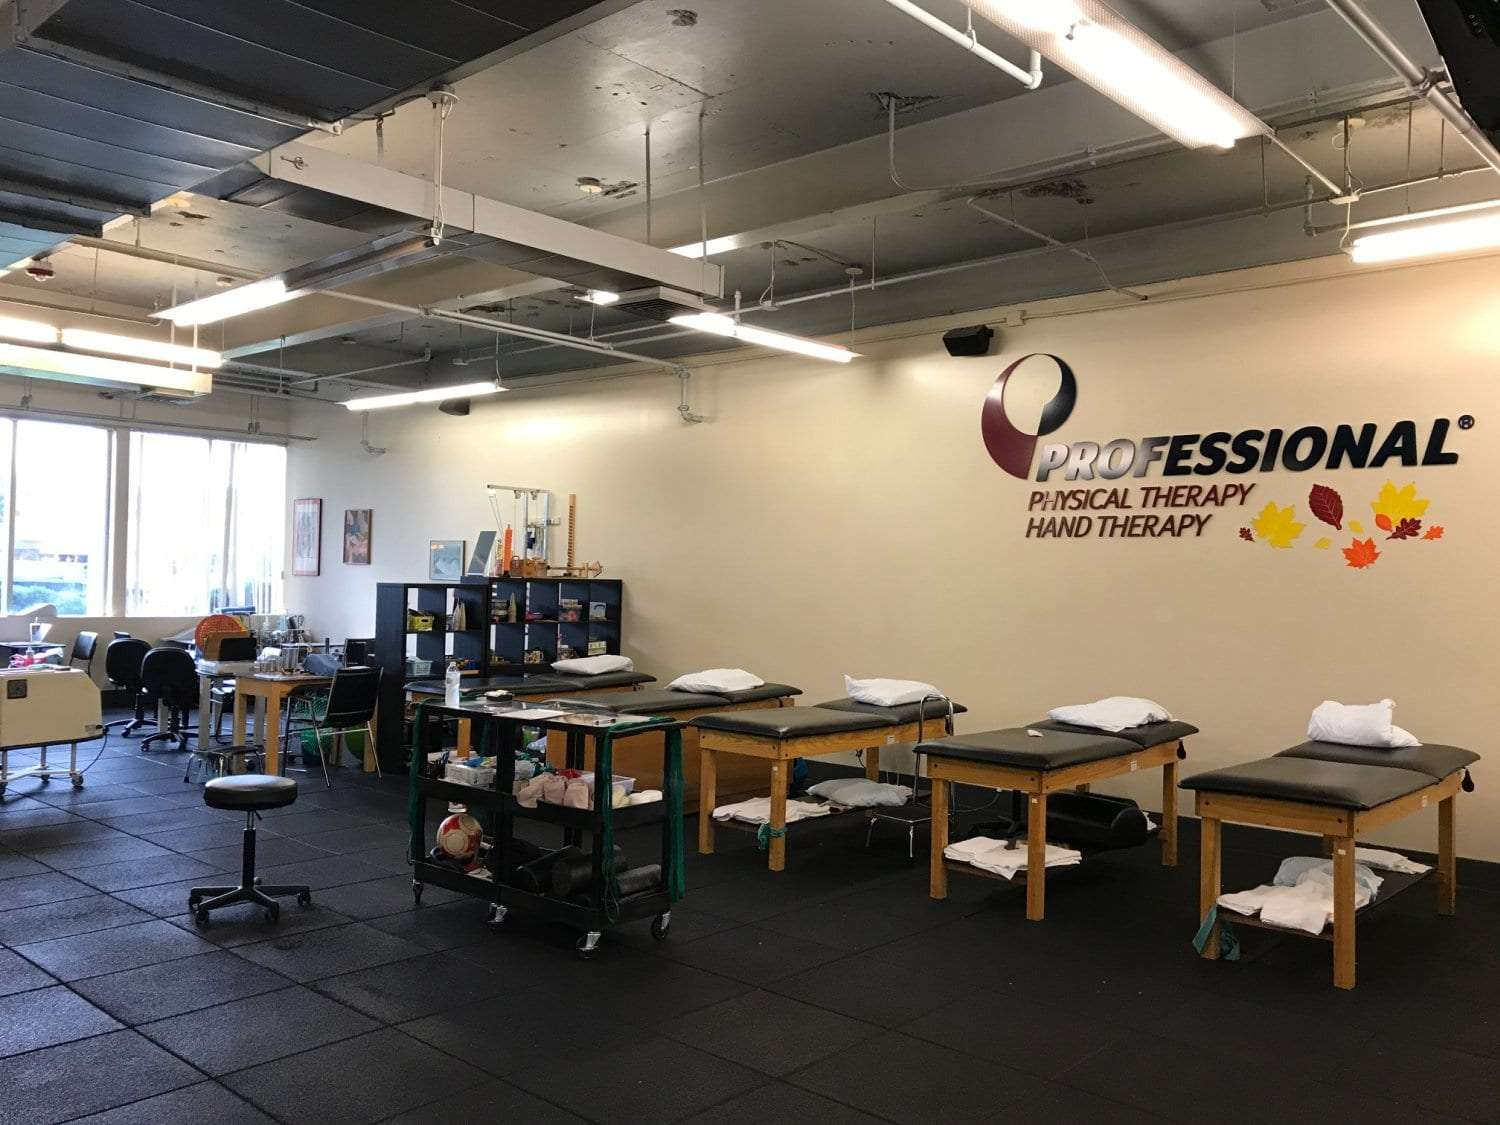 An image of five stretch beds along a wall under our Professional Physical Therapy sign at our clinic in Melville, Long Island in Suffolk County, New York.